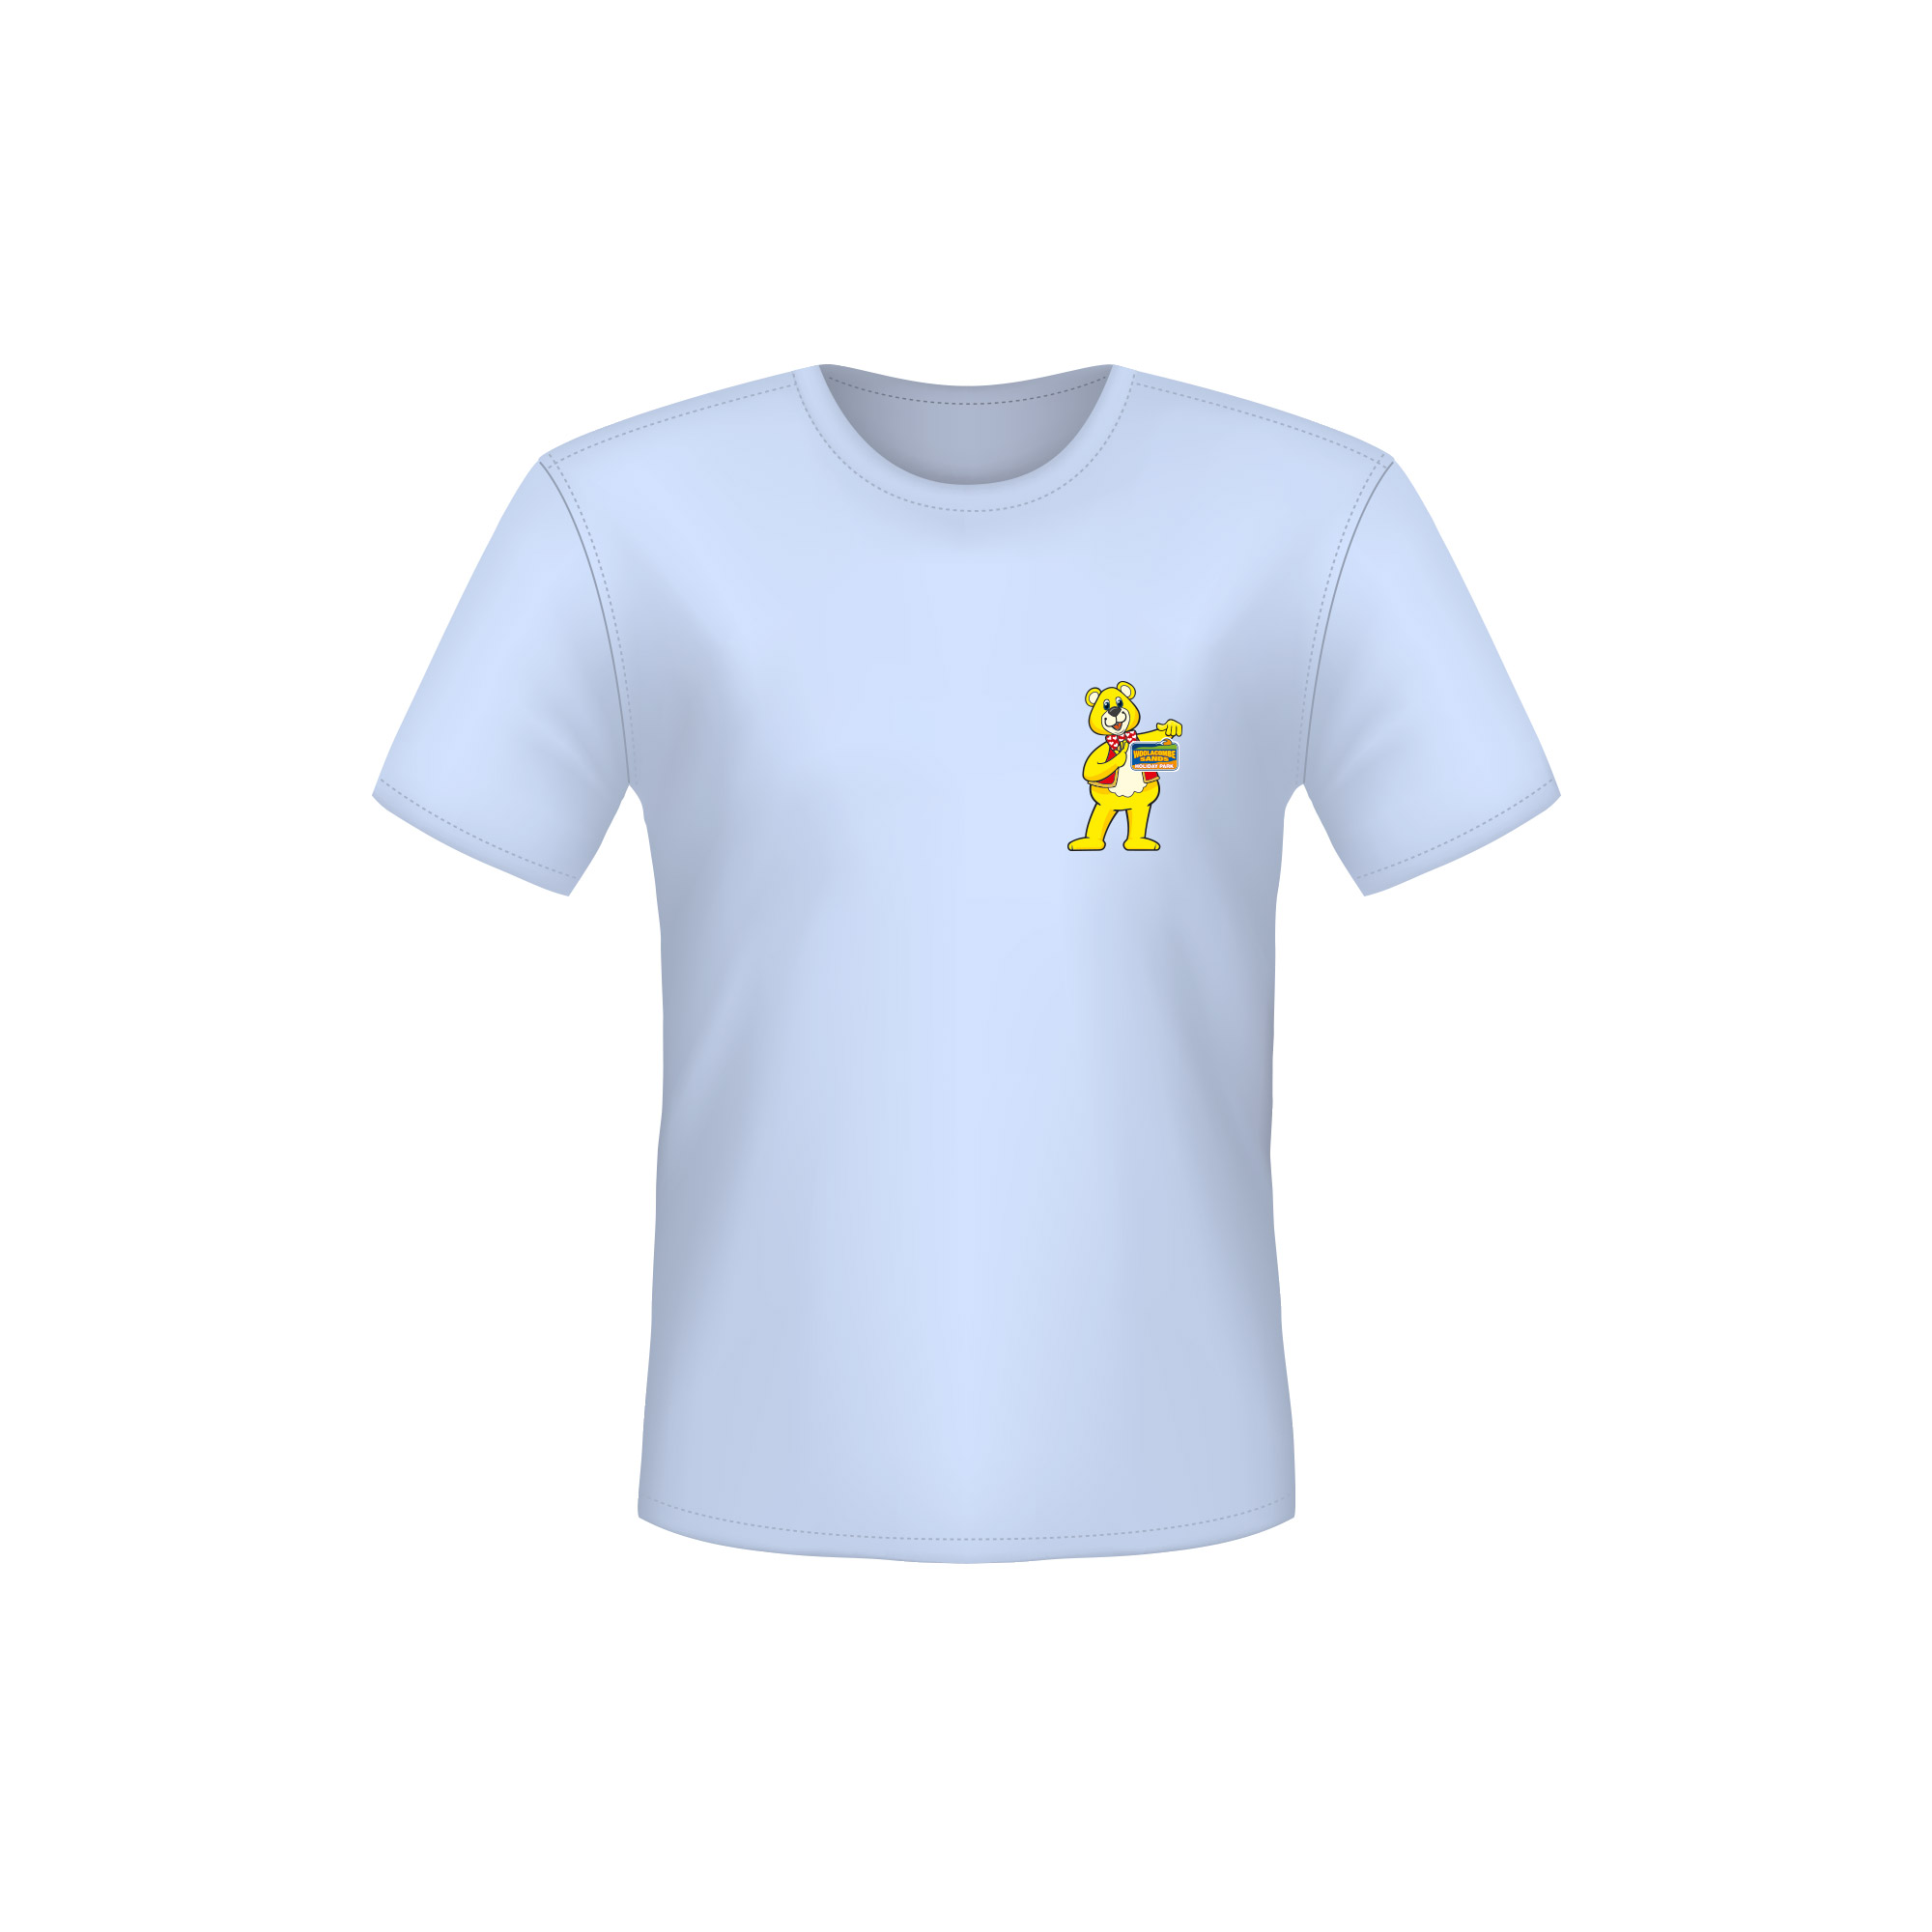 A Blue T-Shirt with a Woolly Bear Logo on the left side of the chest